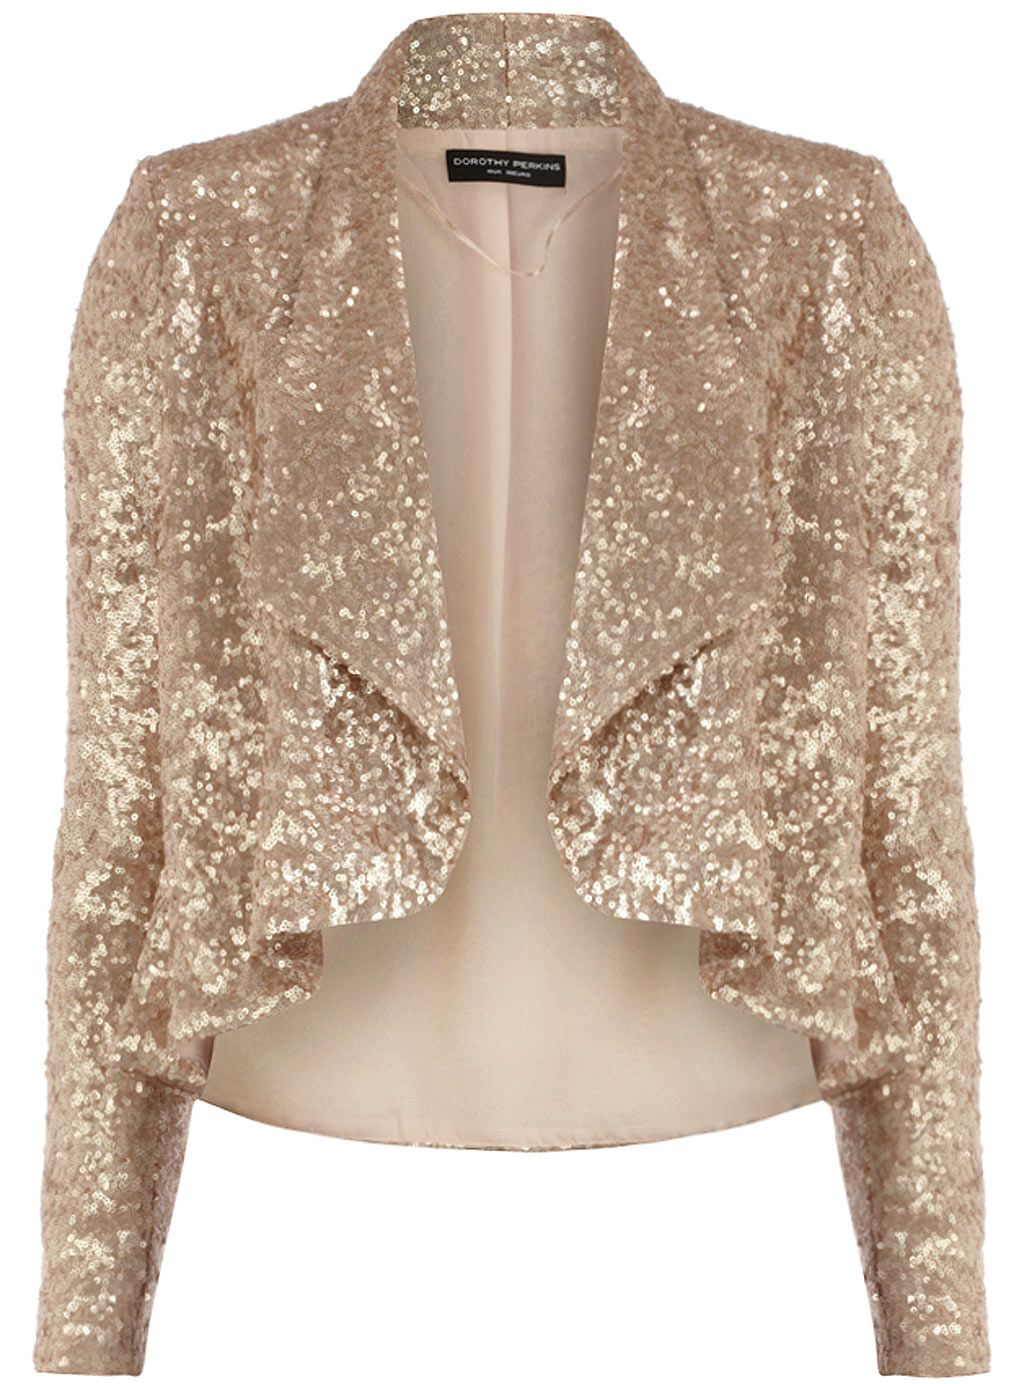 5f4c2f98efeca ... rose gold sequined jacket. OMG I have no need for this jacket but I  want it sooooo bad!